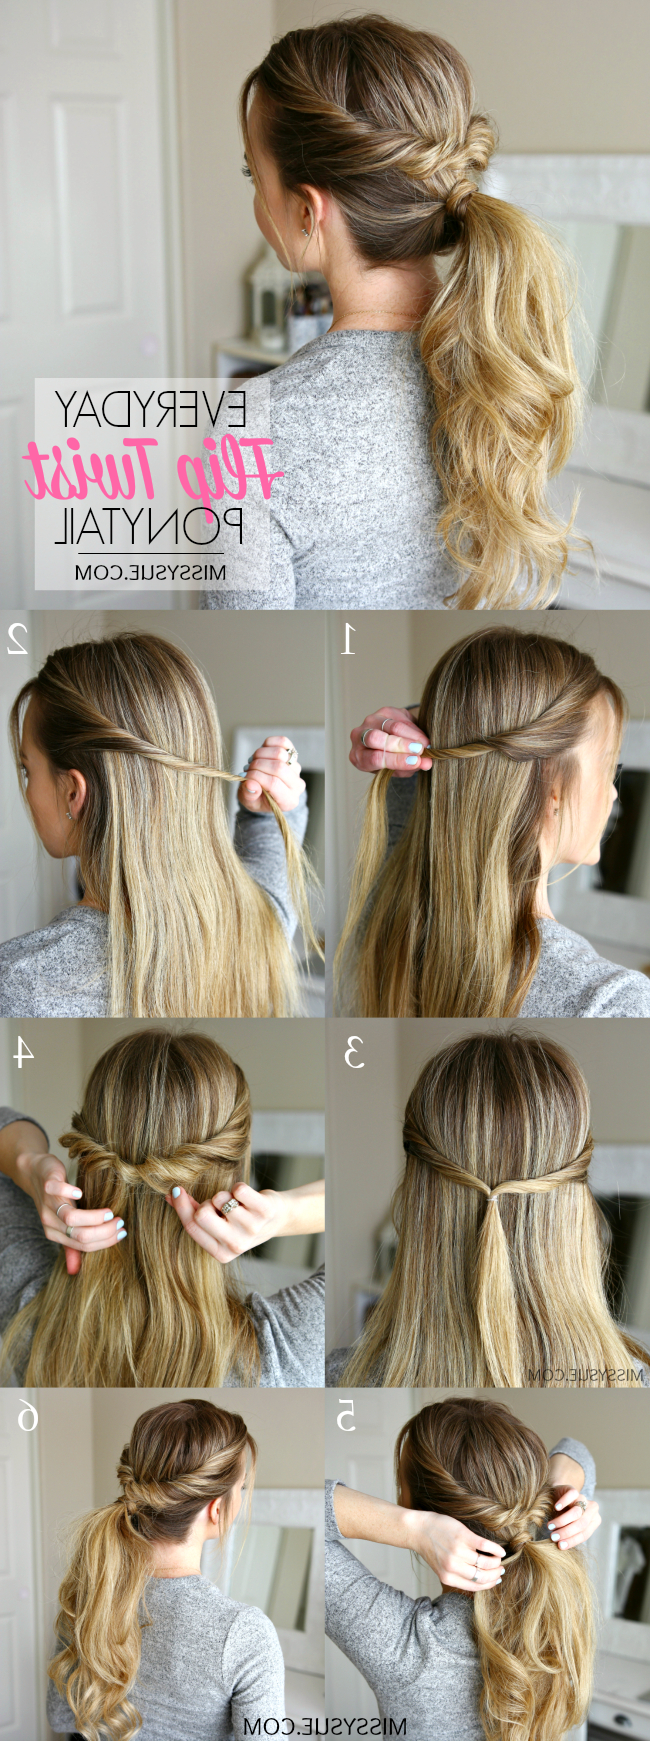 Long Hair Styles (View 4 of 20)